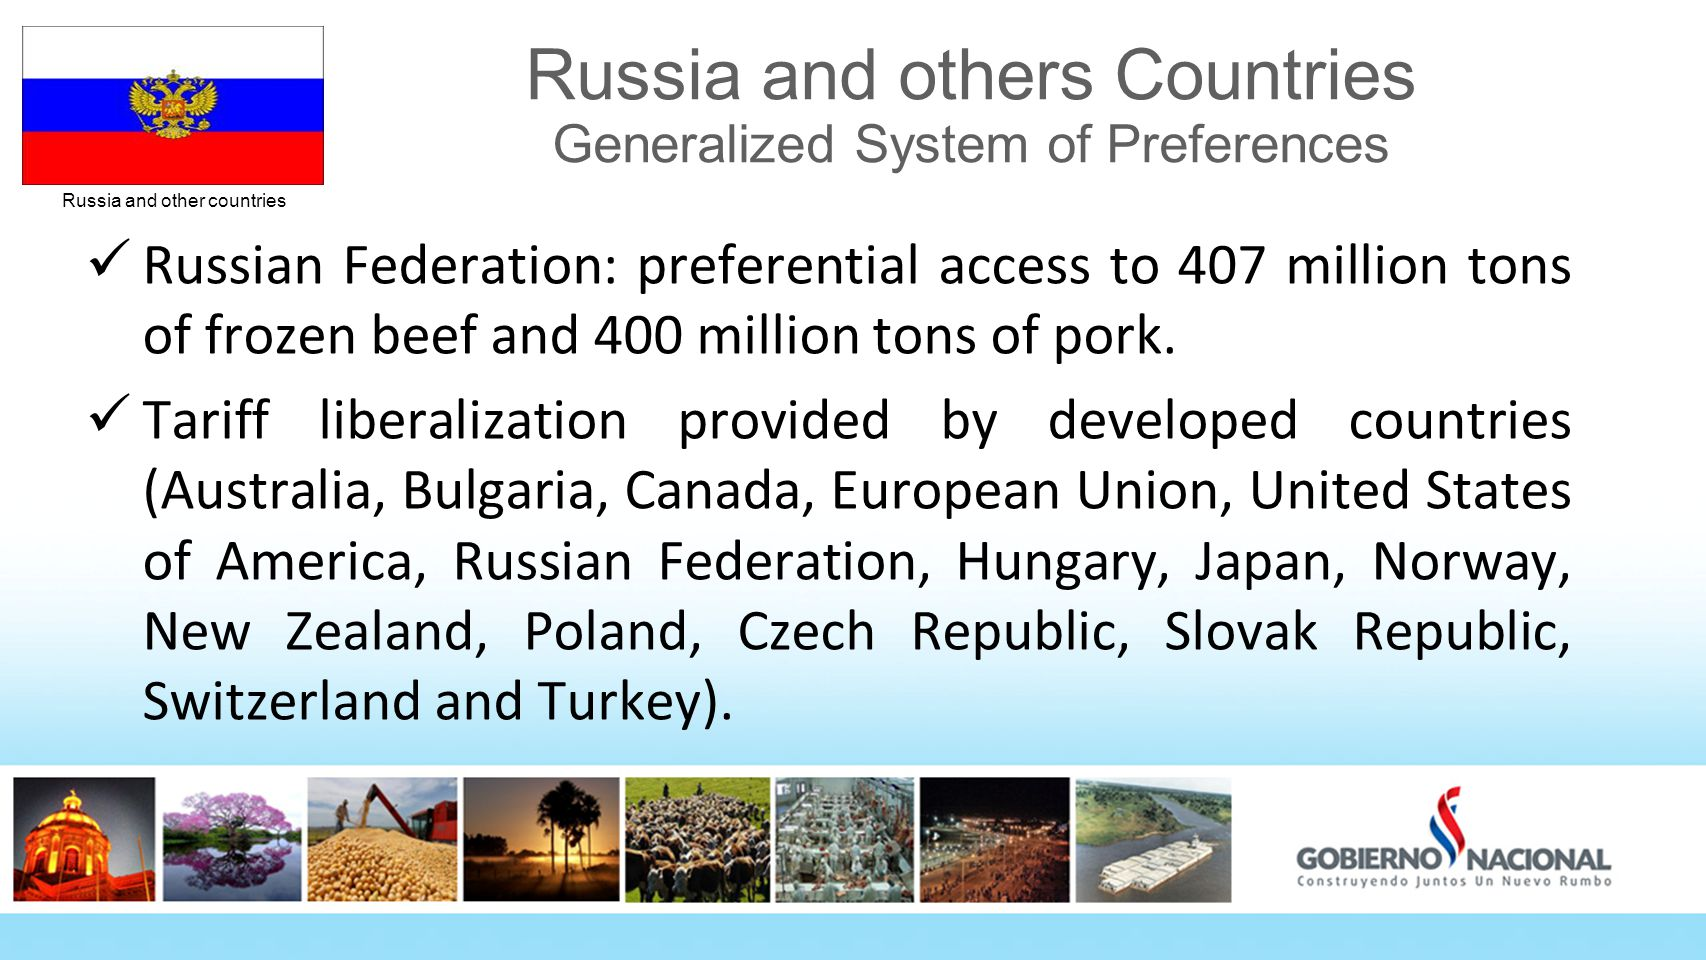 Russia and other countries Russia and others Countries Generalized System of Preferences Russian Federation: preferential access to 407 million tons of frozen beef and 400 million tons of pork.